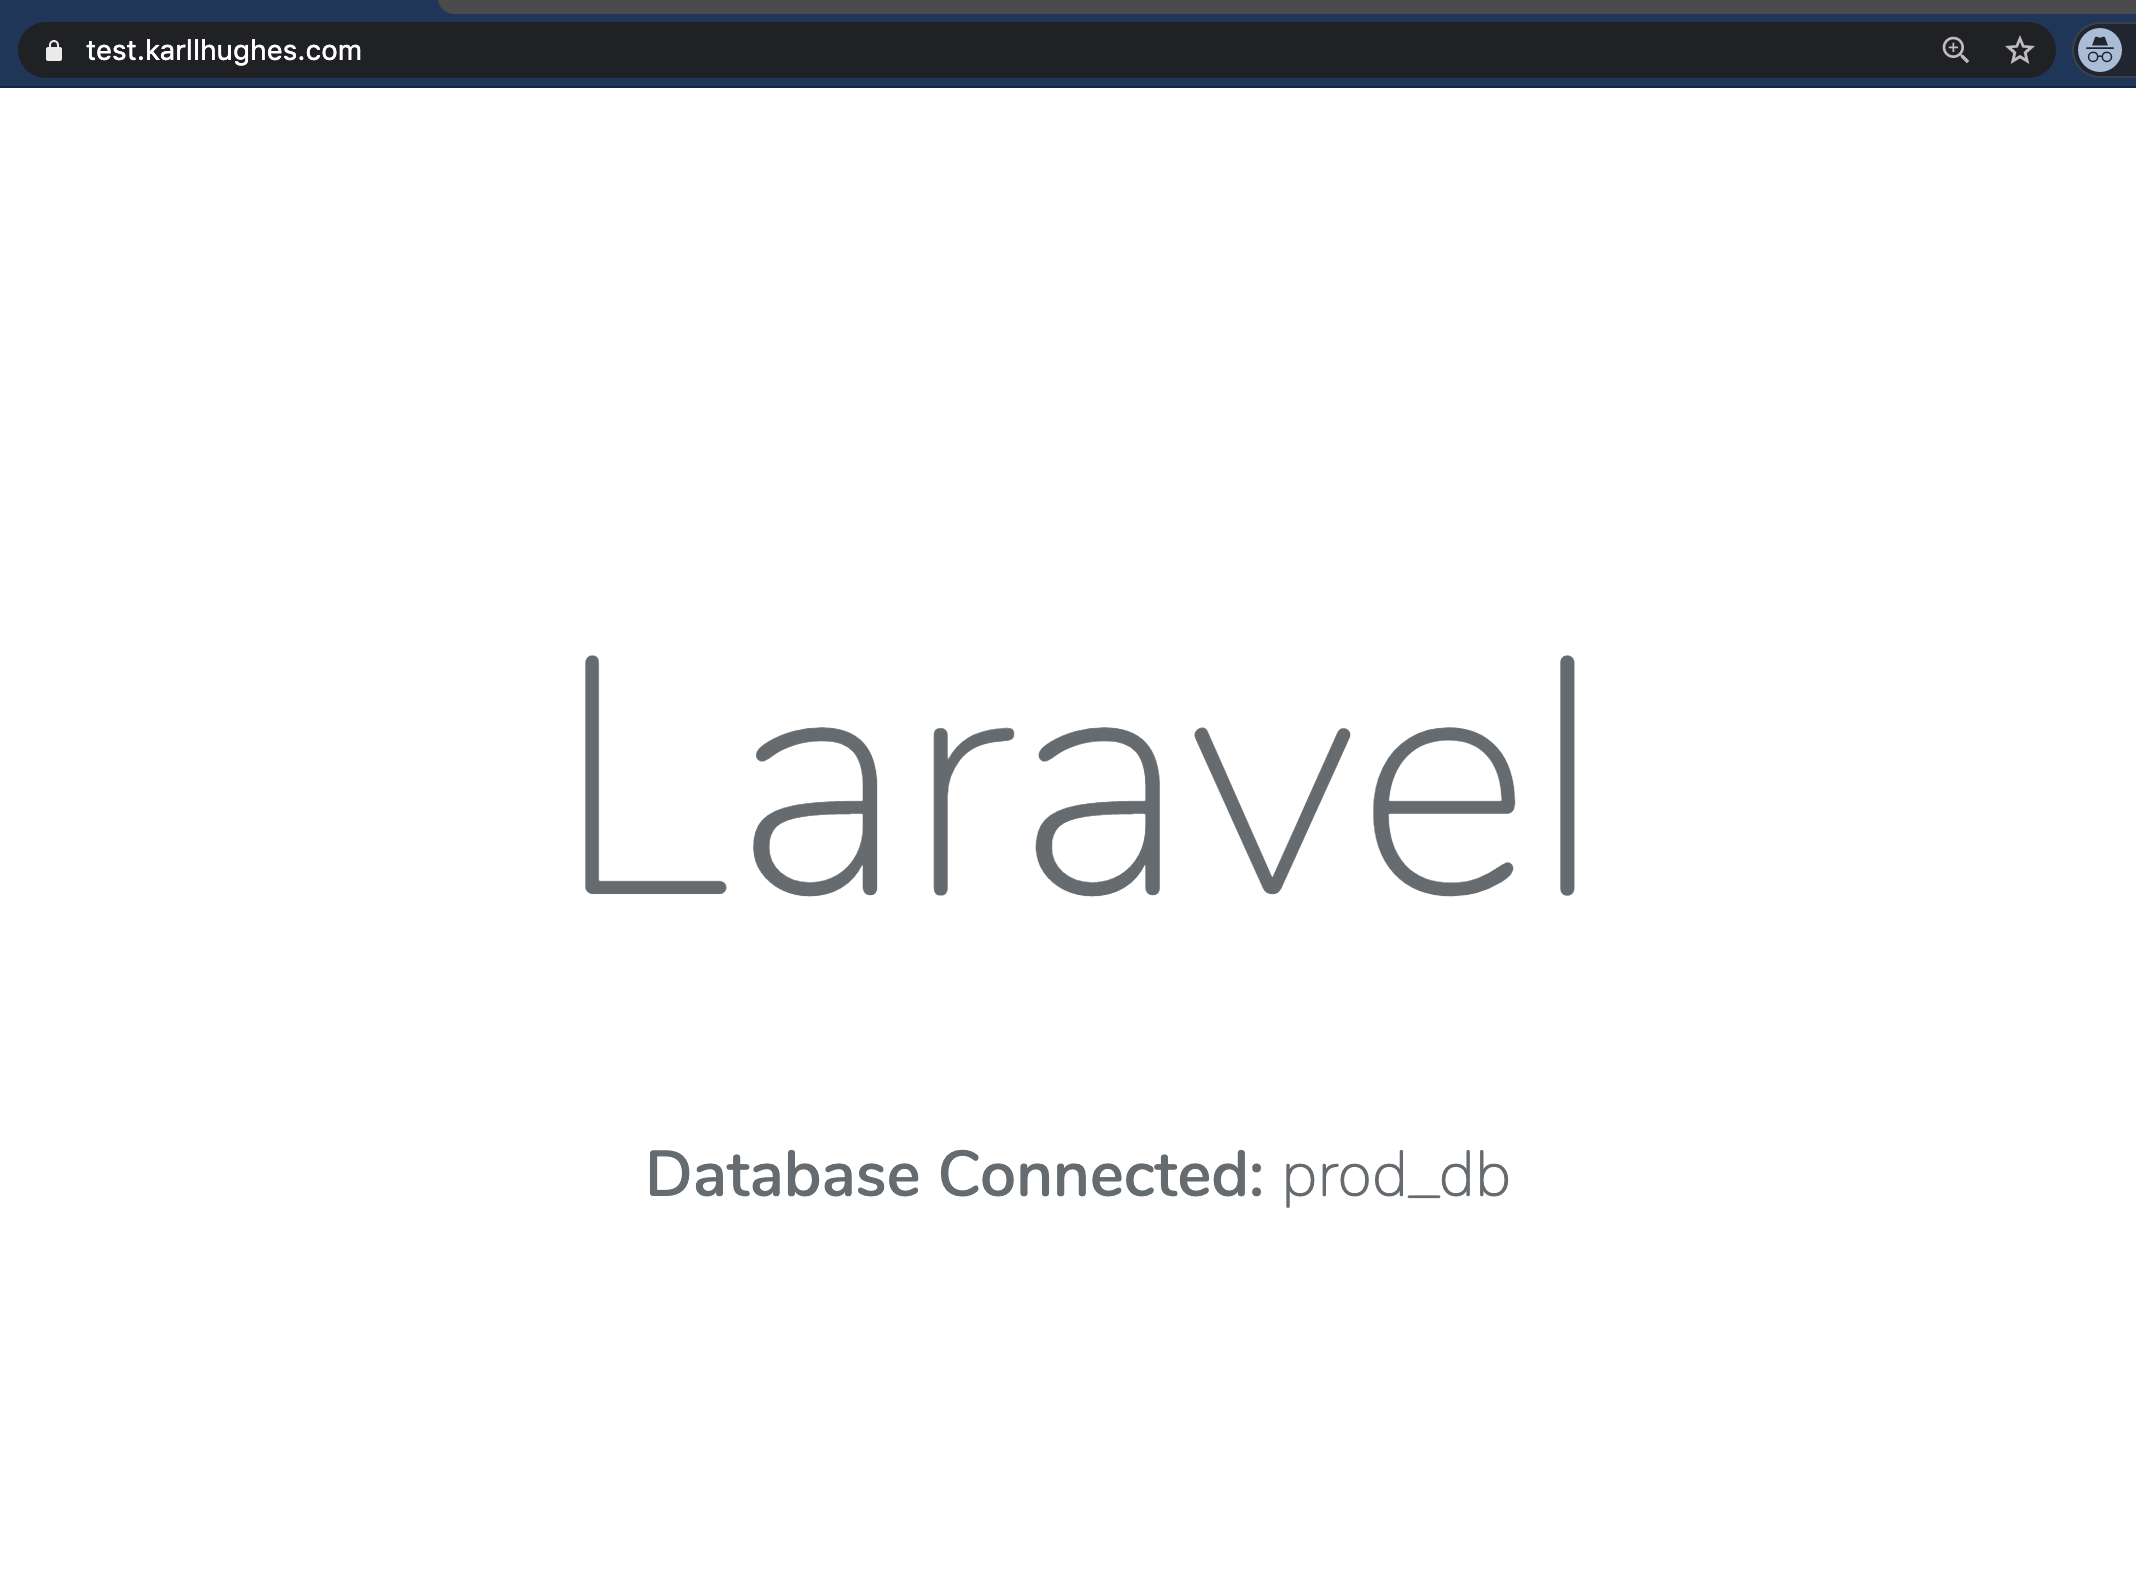 The Laravel application with SSL termination and a custom domain name